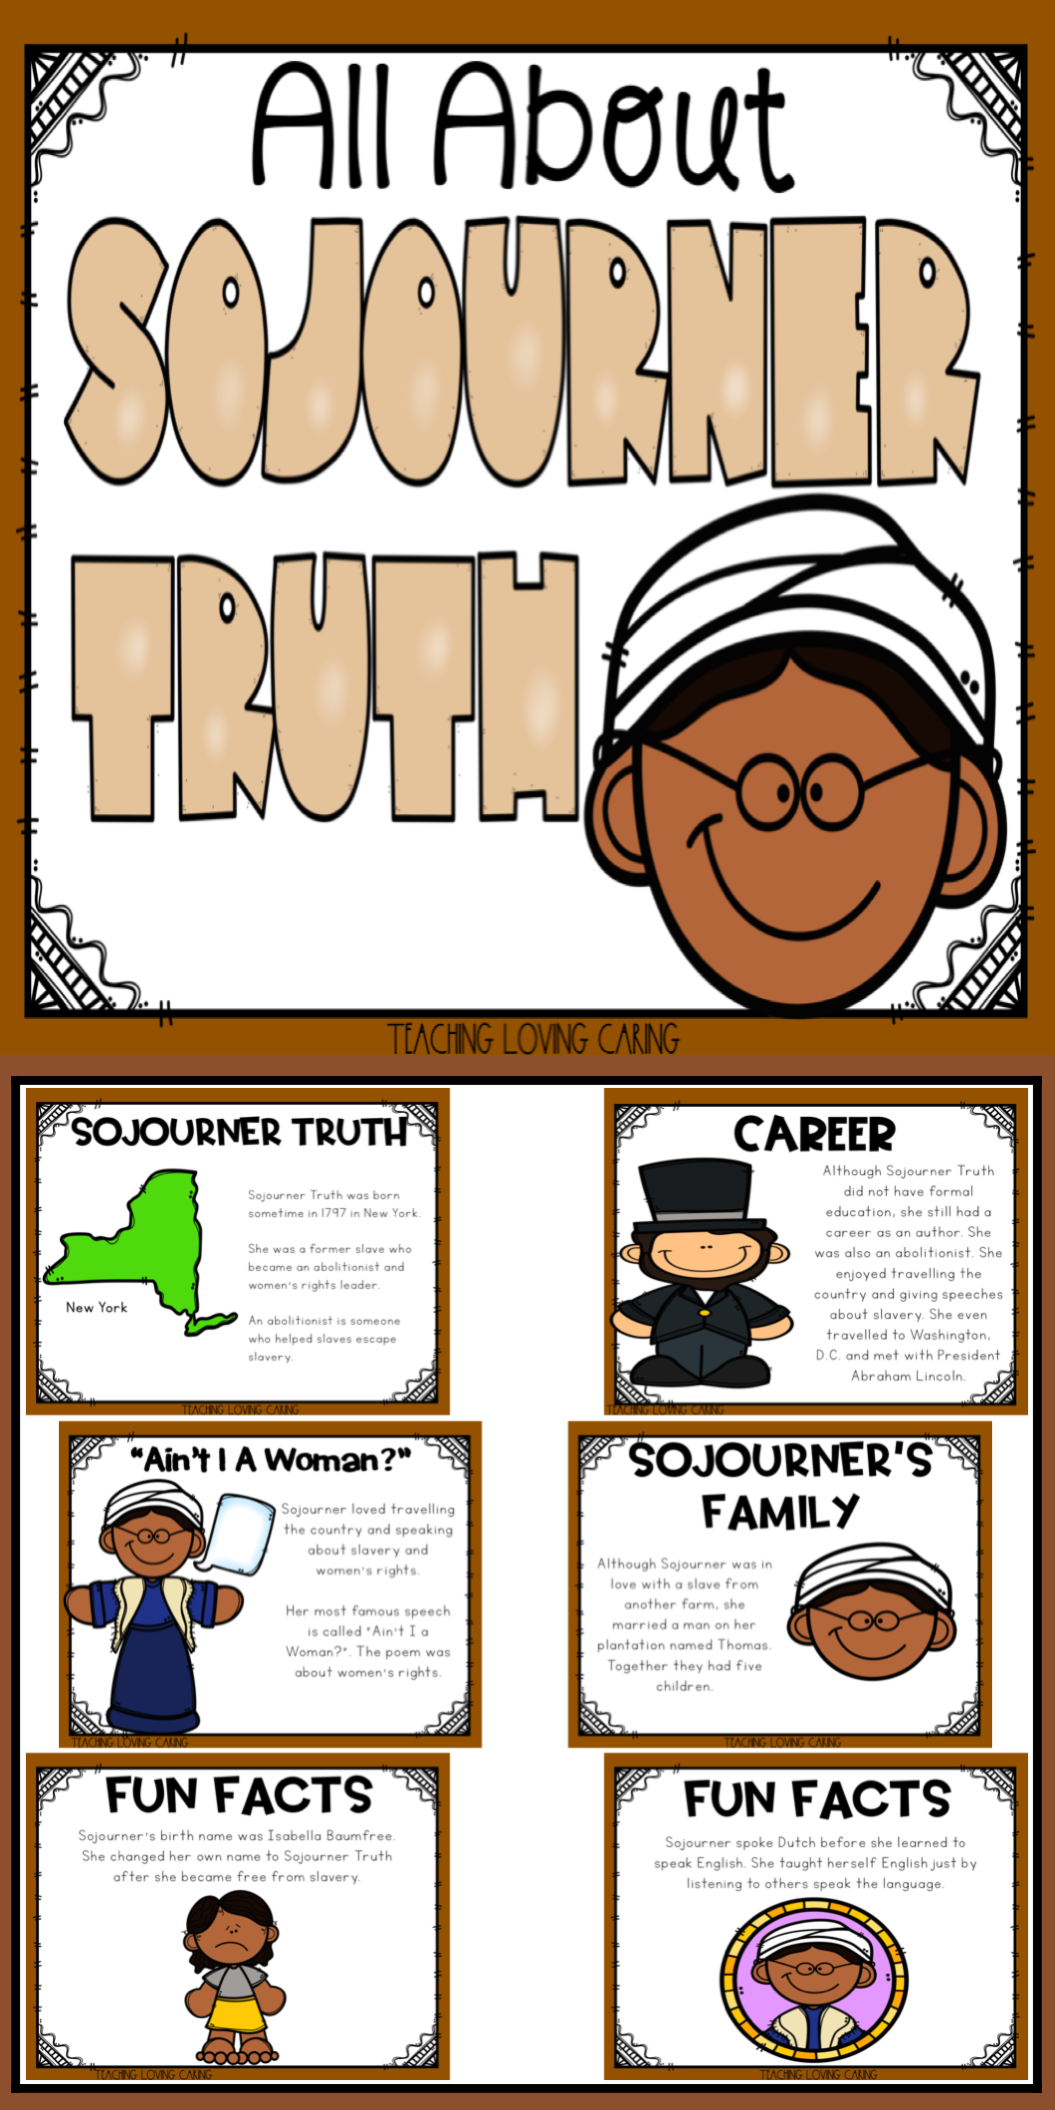 All About Sojourner Truth Use This Kid Friendly Presentation To Teach Your Class All Ab Sojourner Truth Black History Month Activities Social Studies For Kids [ 2110 x 1055 Pixel ]